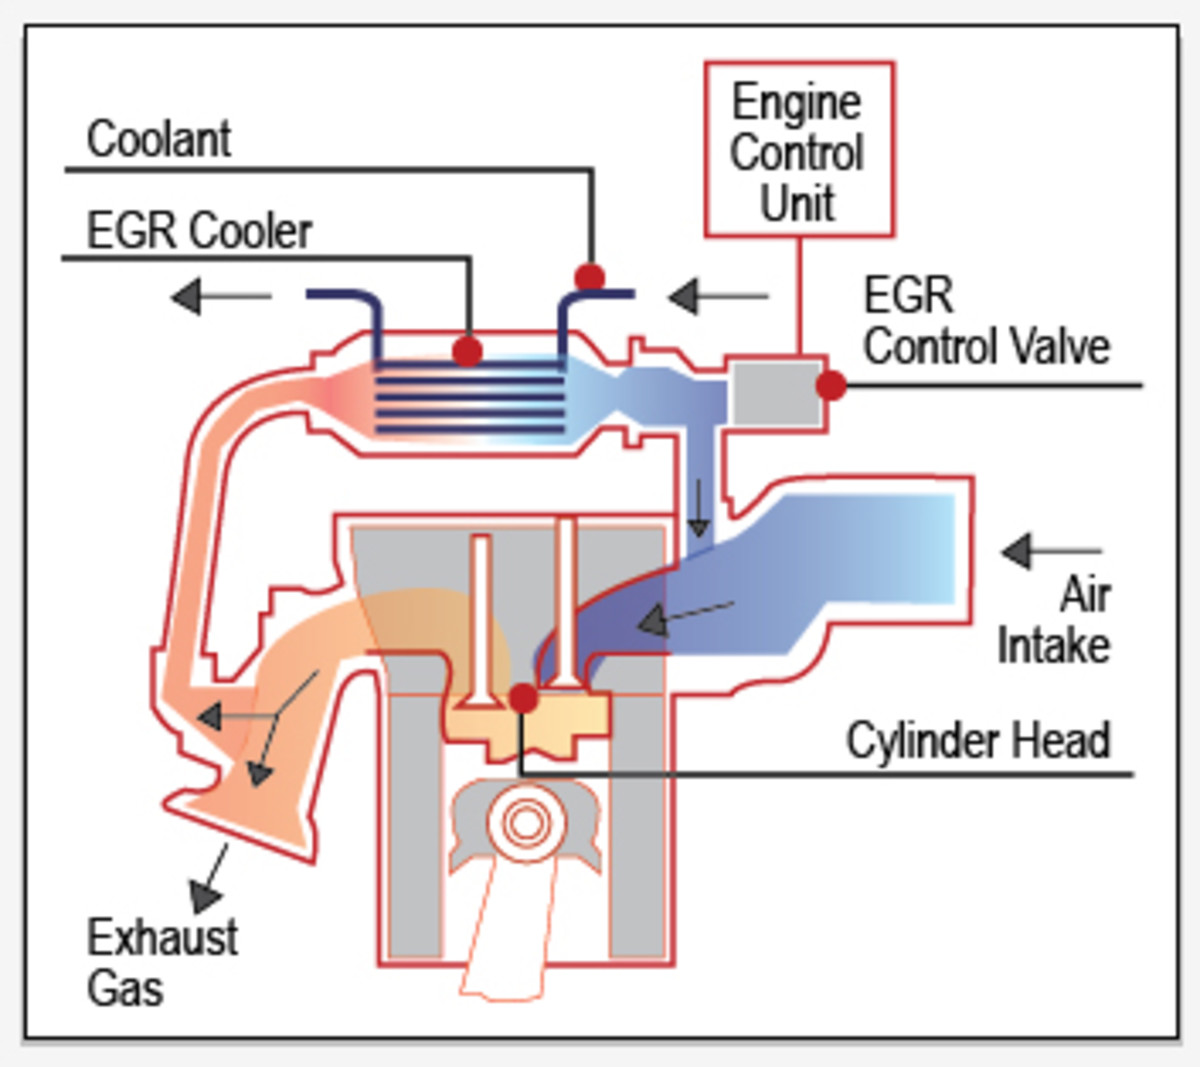 If failed, the EGR system may cause engine performance issues.